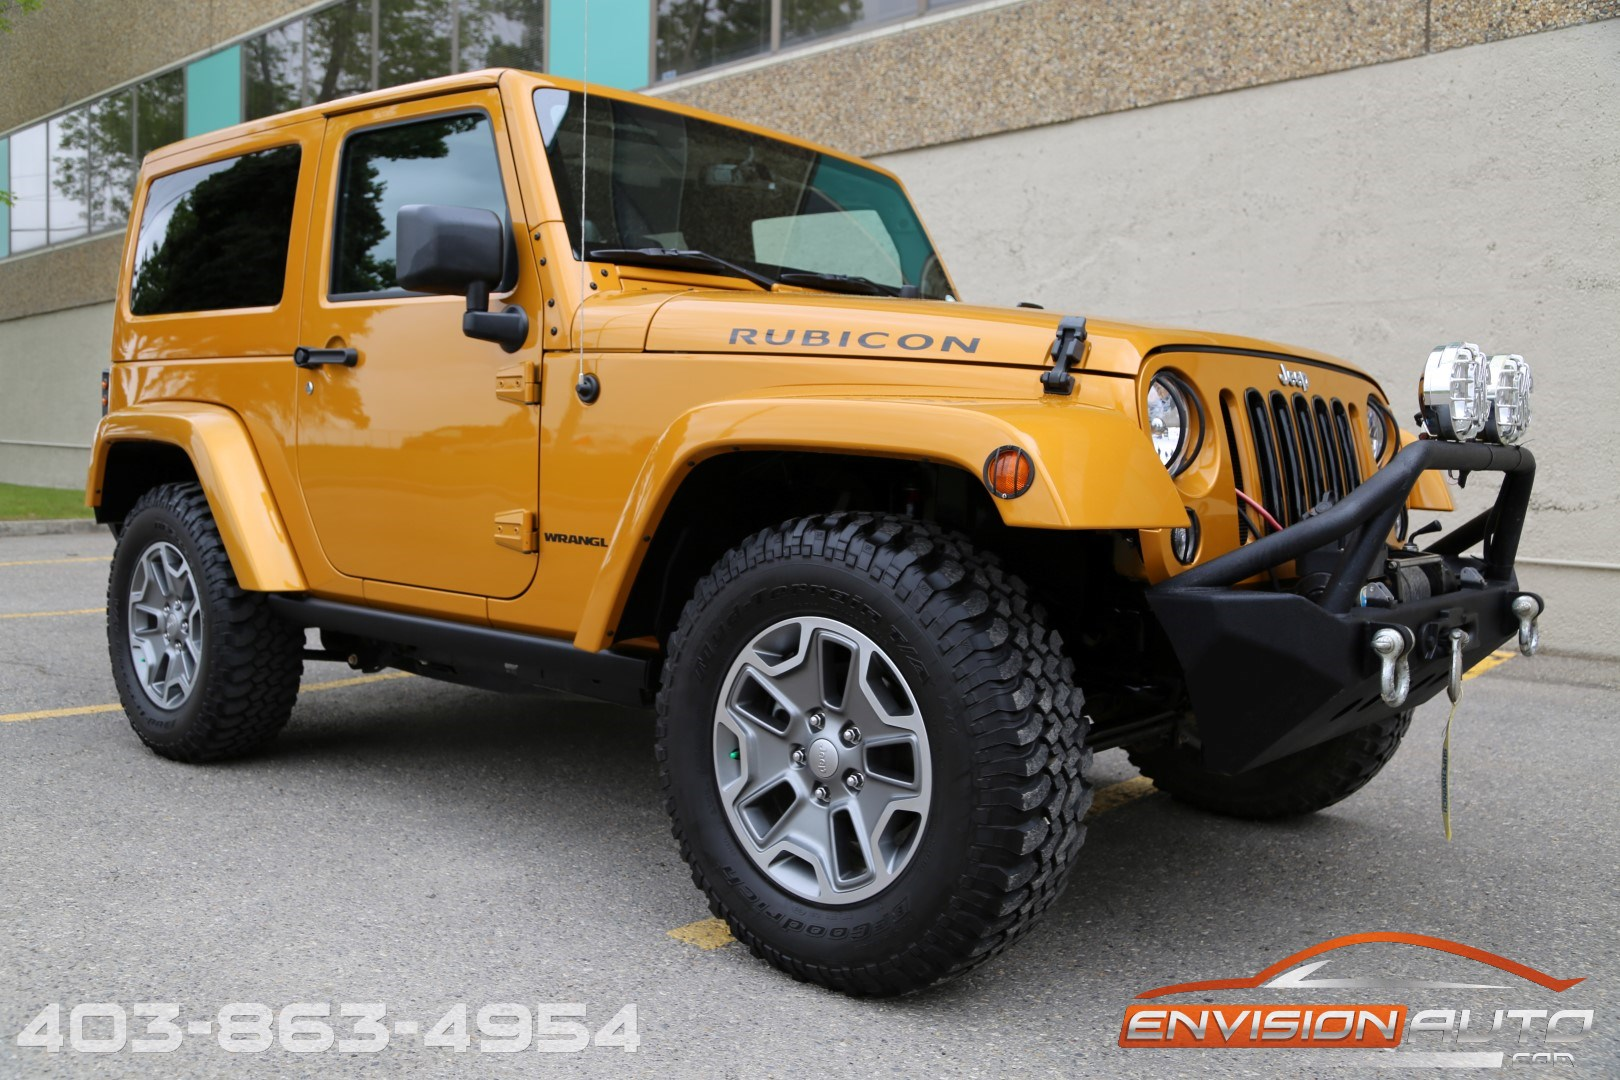 2014 jeep wrangler rubicon 4 4 2 door 6 speed manual envision auto. Black Bedroom Furniture Sets. Home Design Ideas